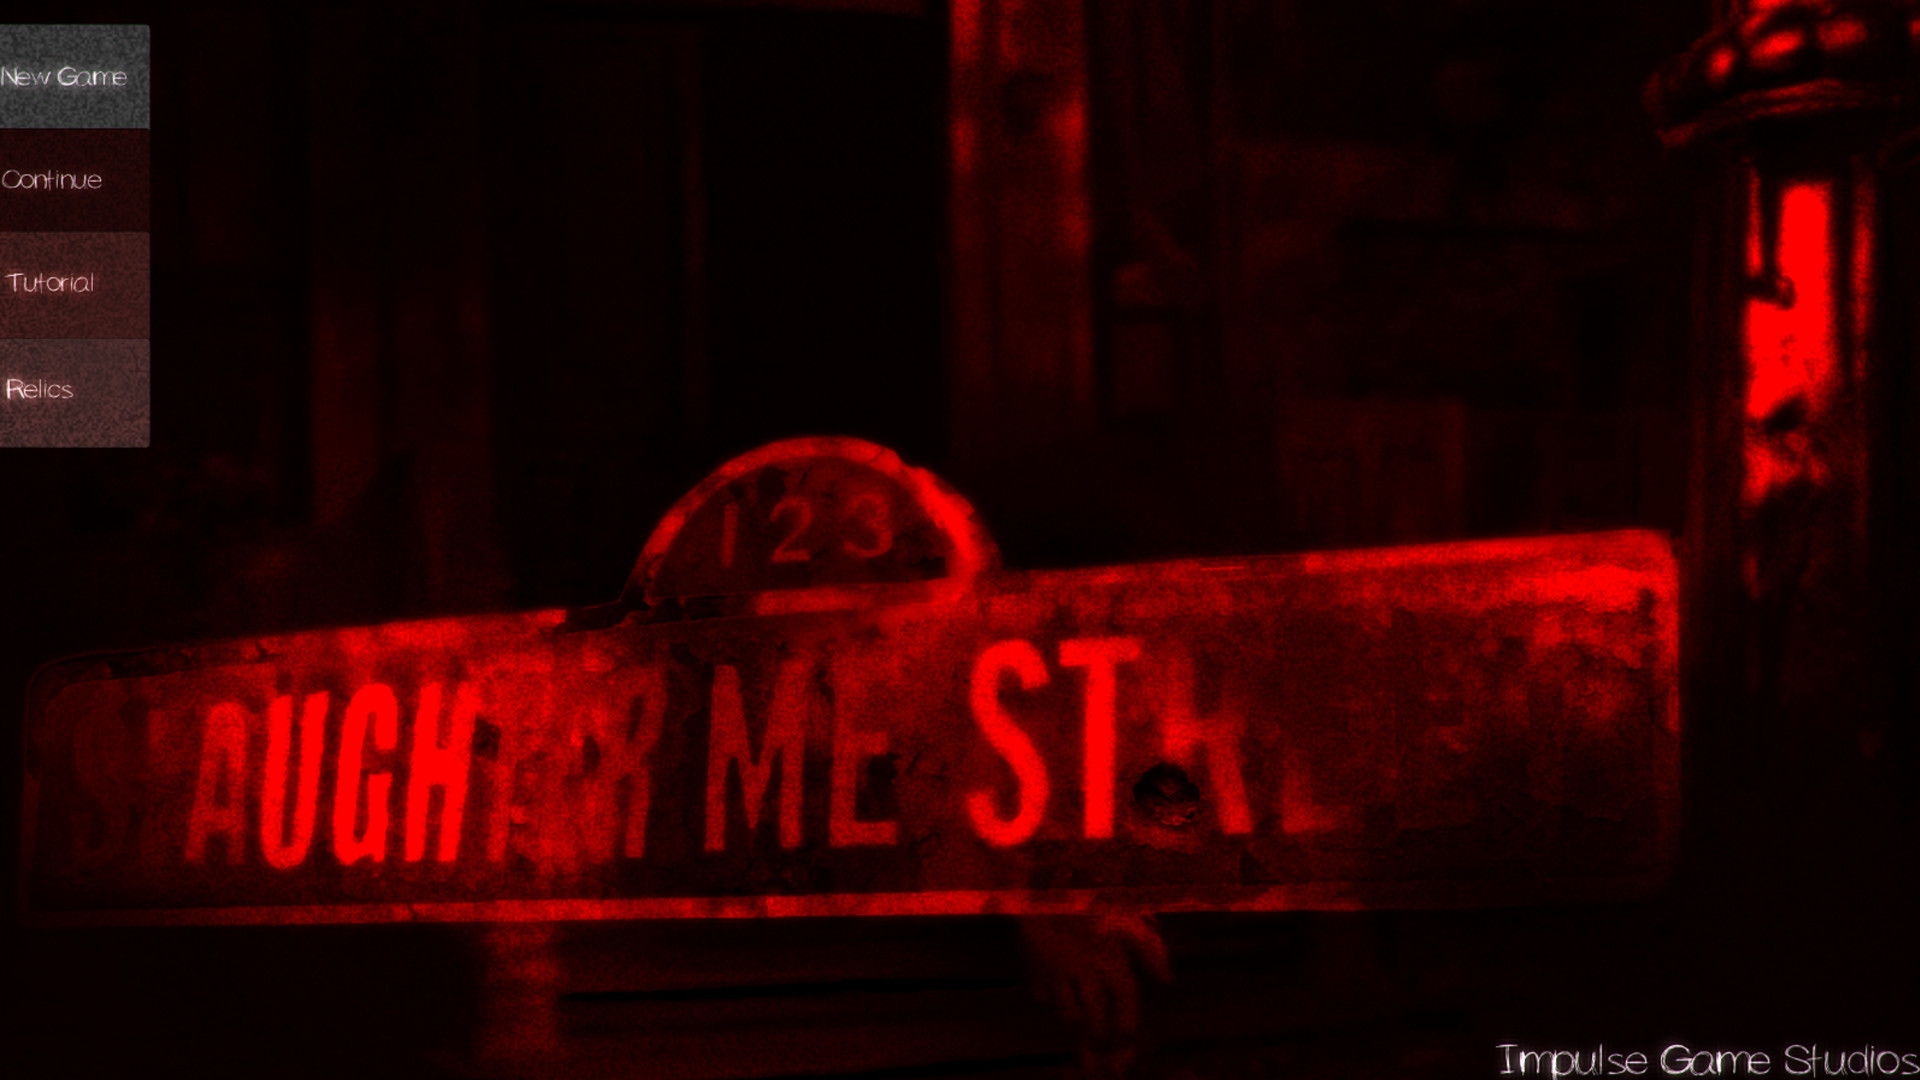 123 Slaughter Me Street (Steam Key, Region Free)